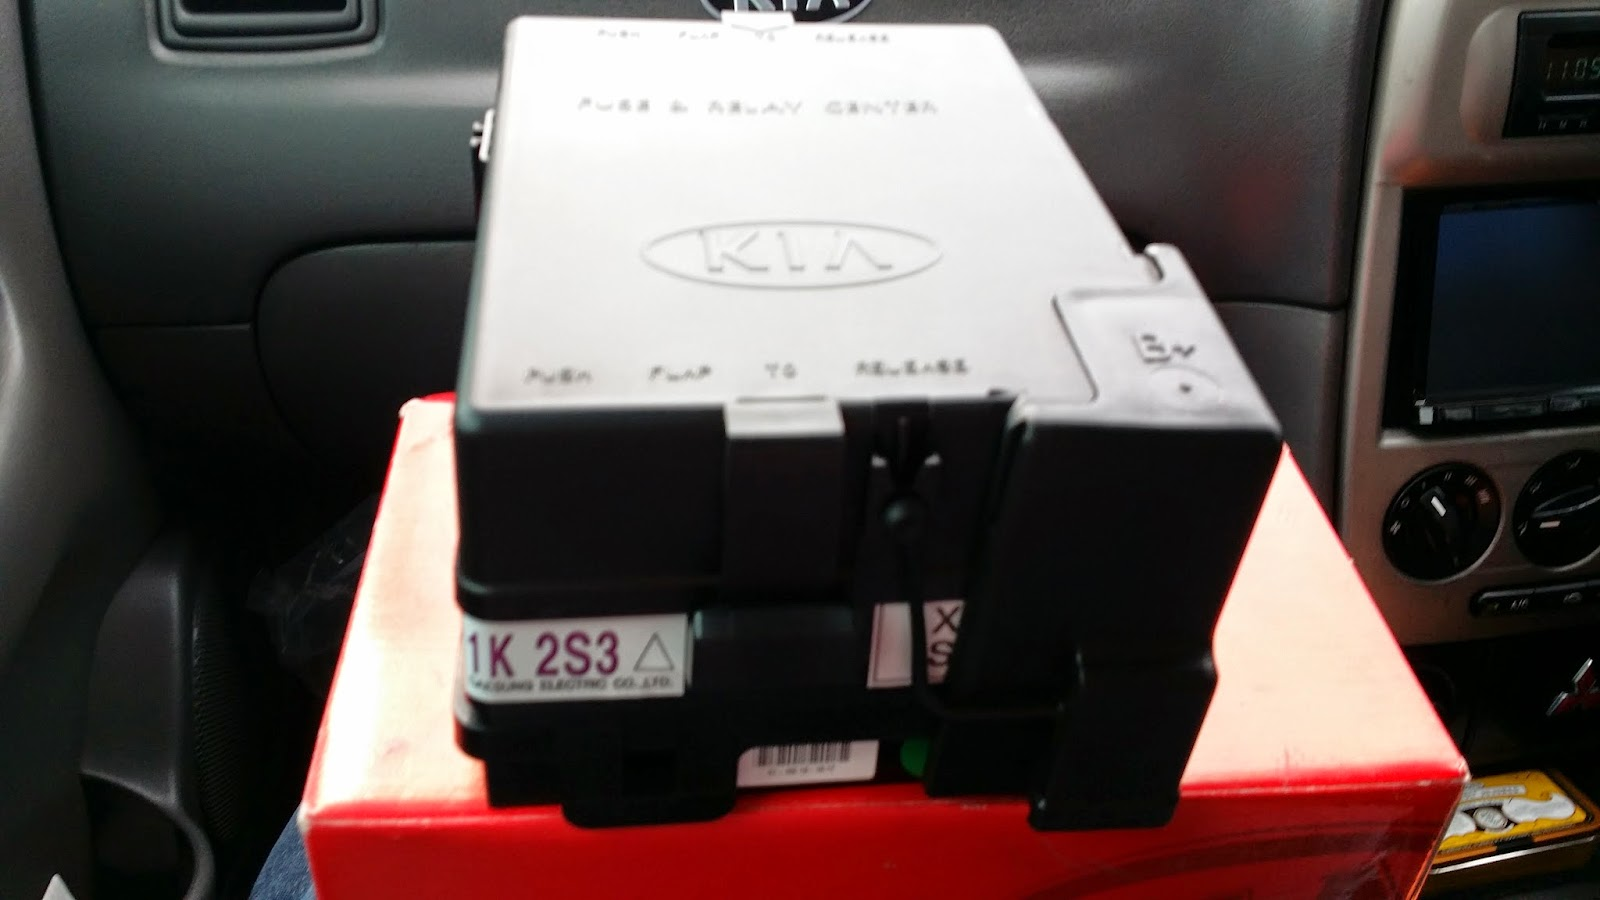 kia spectra kia spectra genuine main fuse box assy full kit for sale rh  kiaspectrals blogspot com kia spectra fuse box location kia spectra fuse  box ...